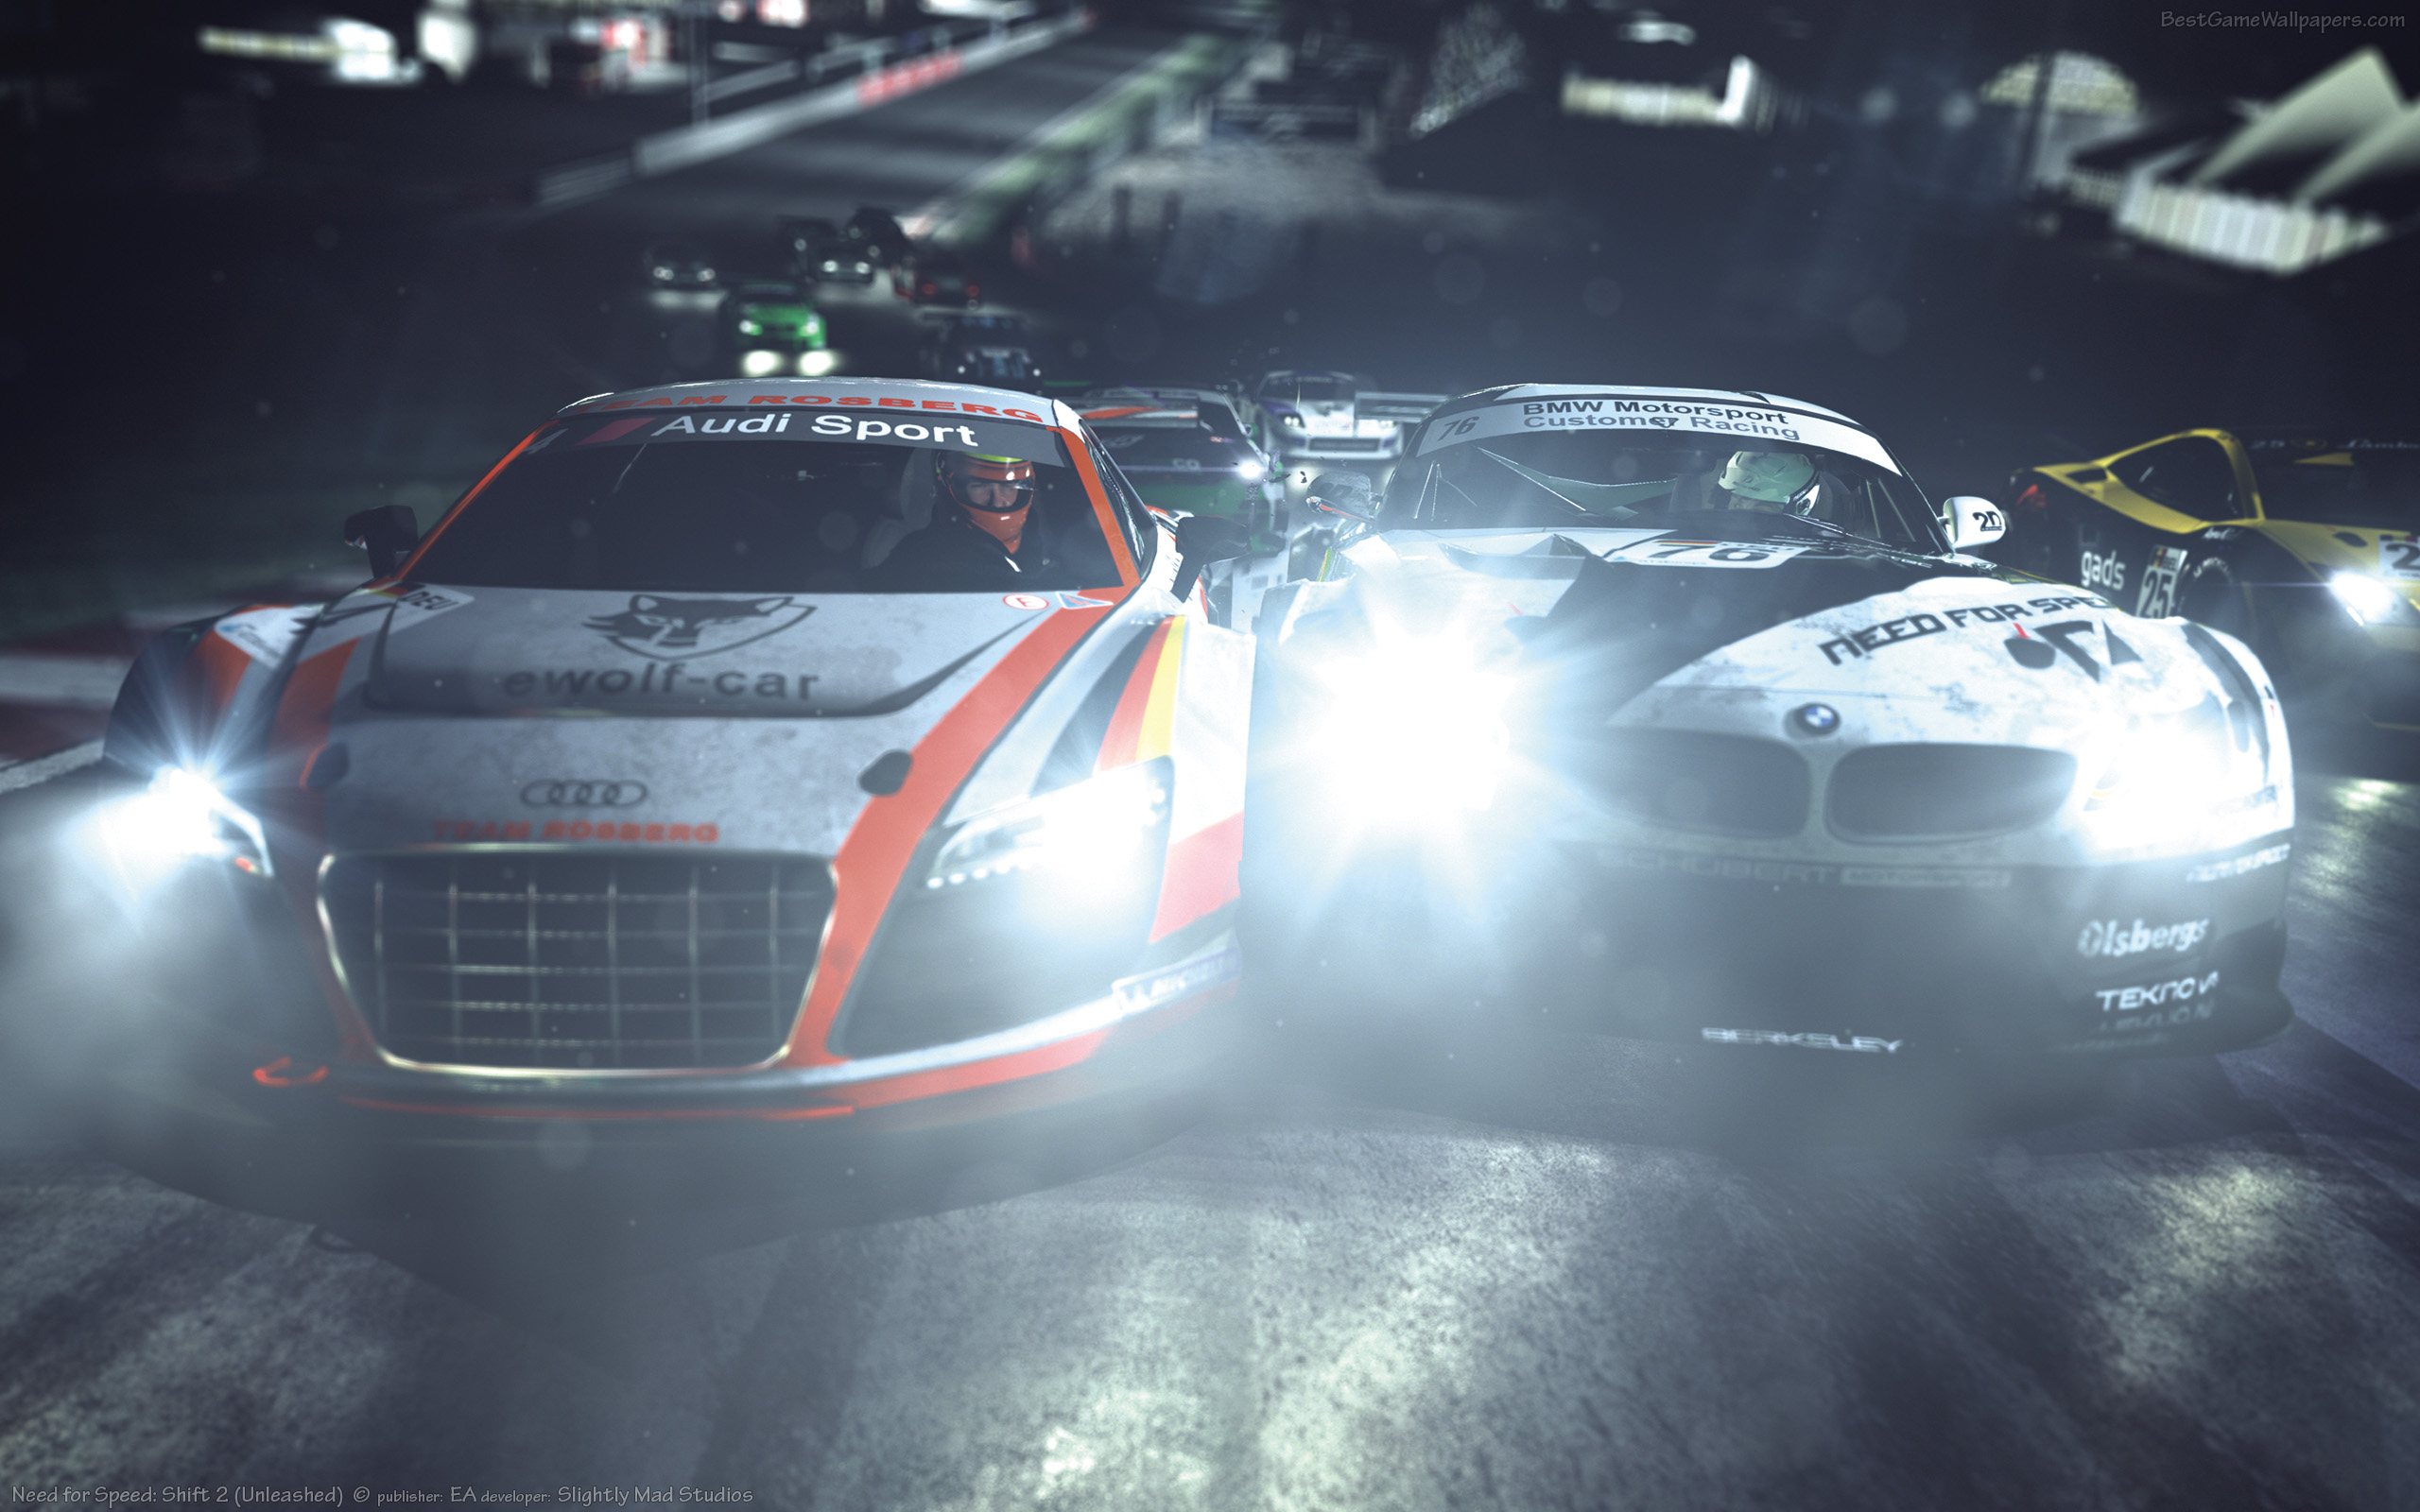 Need for Speed: Shift 2 wallpapers | Need for Speed: Shift ...